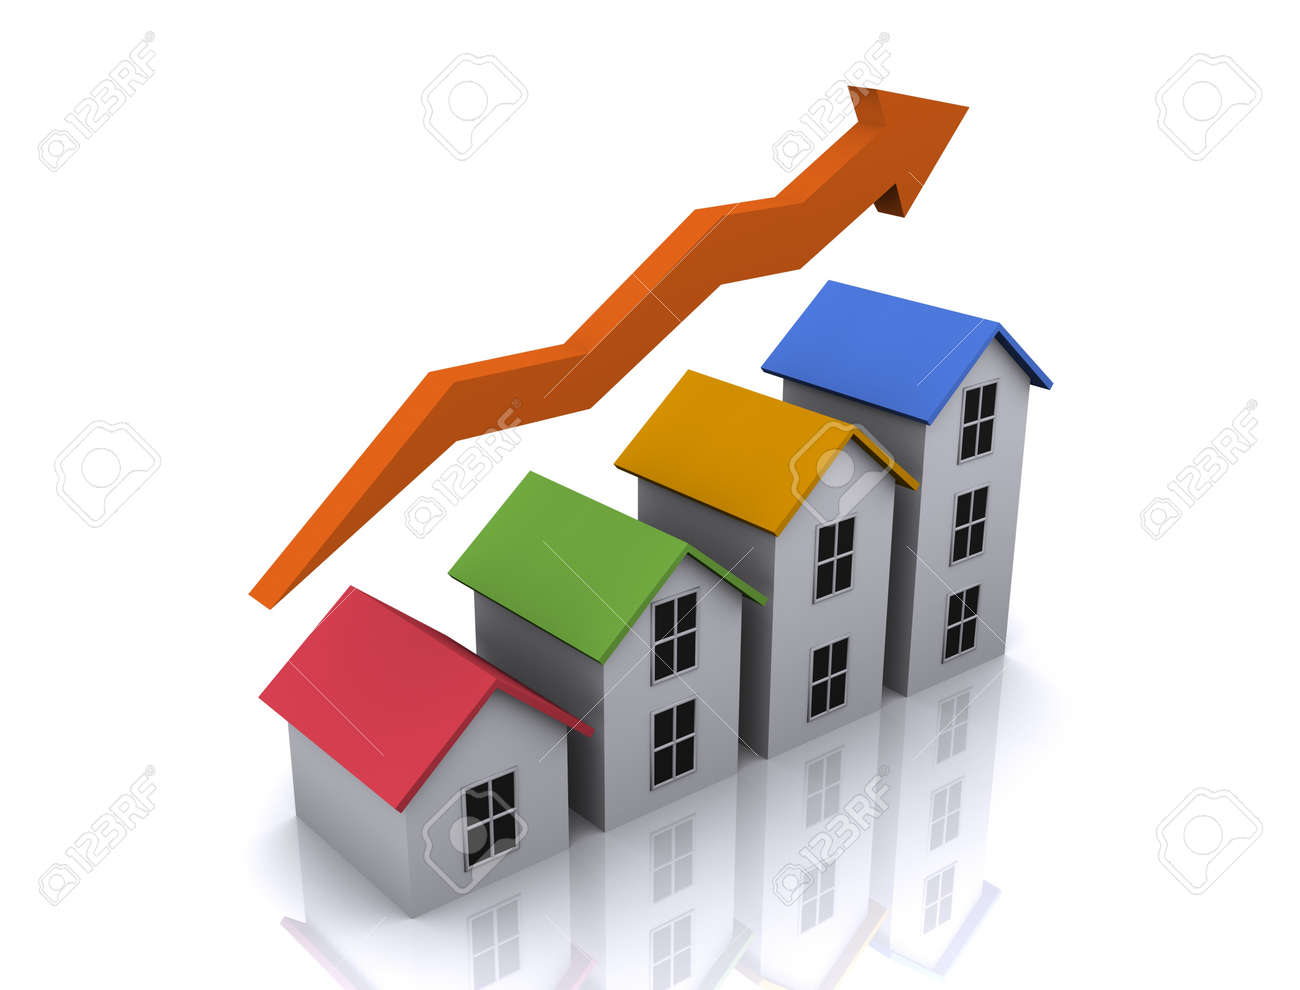 An illustration of 3d real estate icon of growth in housing - 17067882